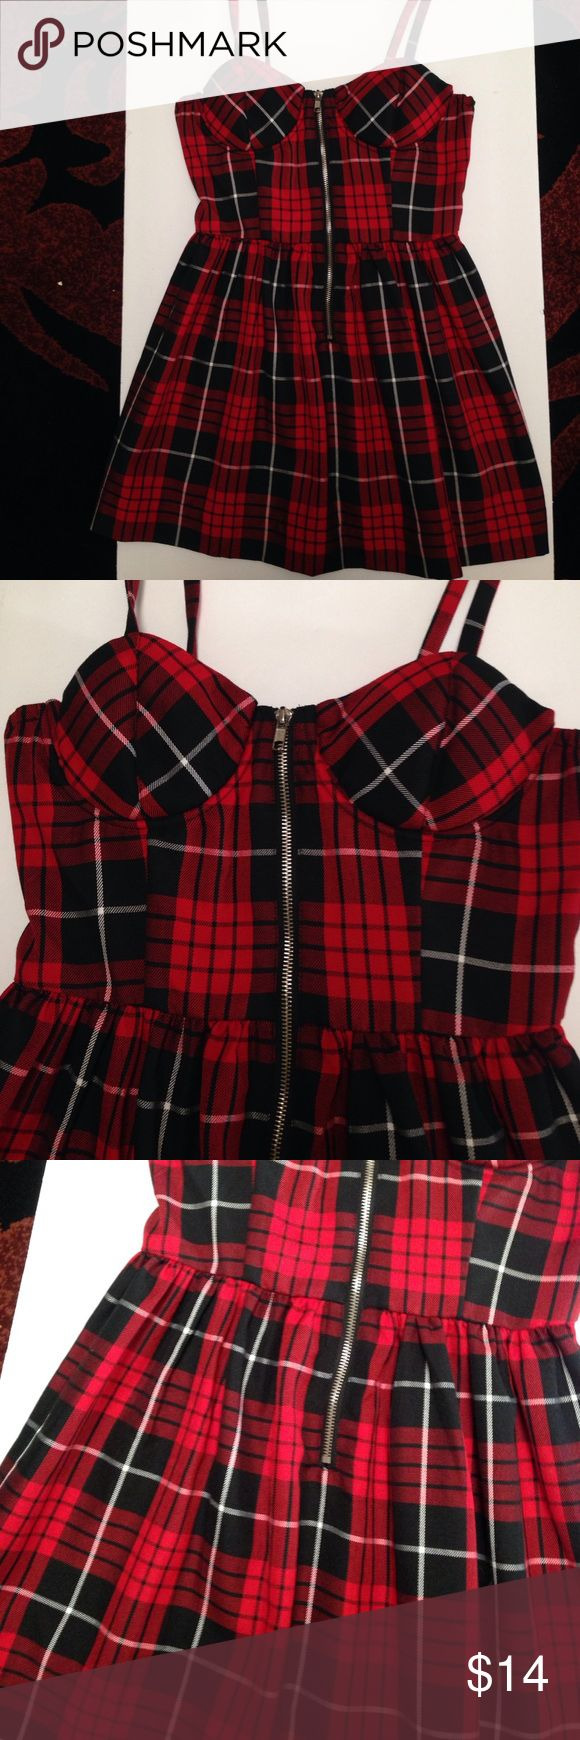 Plaid schoolgirl zip front bustier dress Plaid schoolgirl bustier dress with silver zip front, a line full skirt, and stretch panel in back. This one is super short so if you're tall it's probably a top or you'll need to wear leggings. Or be very popular lol. From top of zipper to bottom hem is 22 inches. New with tag. Size junior M. Poly blend. Dresses Mini